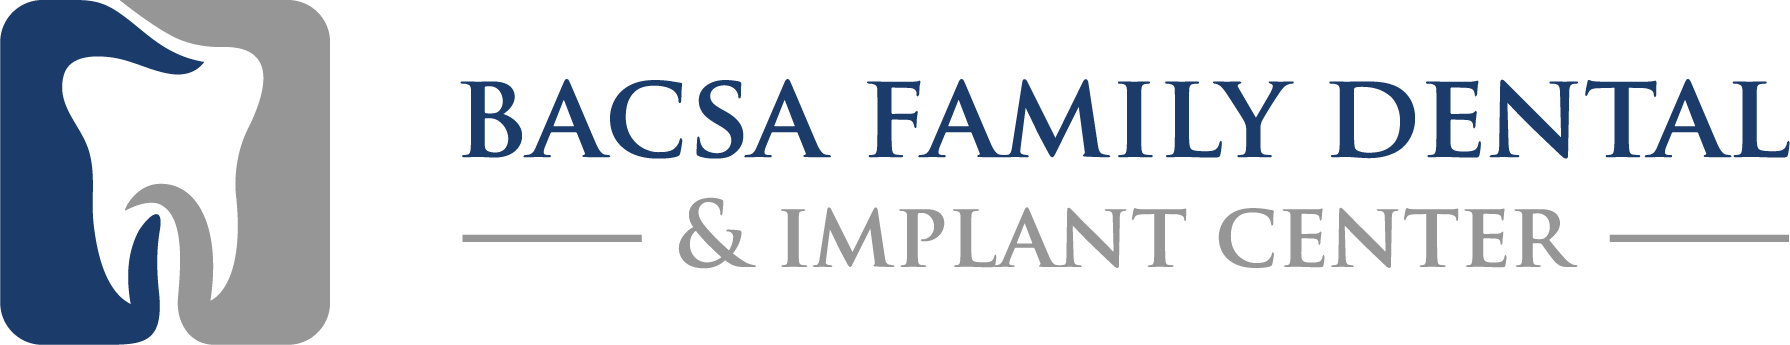 Bacsa Family Dental and Implant Center